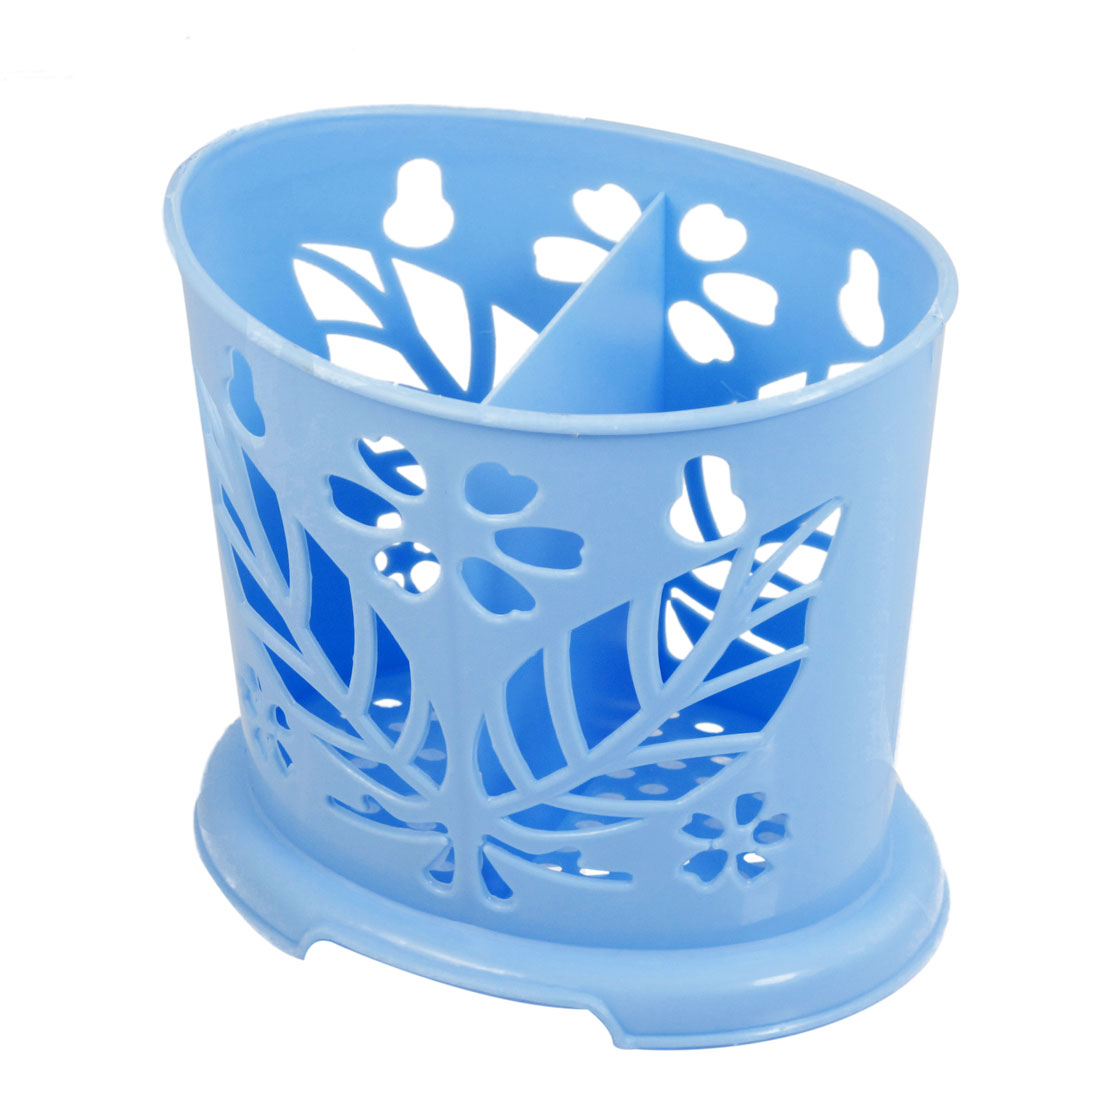 Kitchenware Blue Perforated Bottom Plastic Chopstick Holder Case